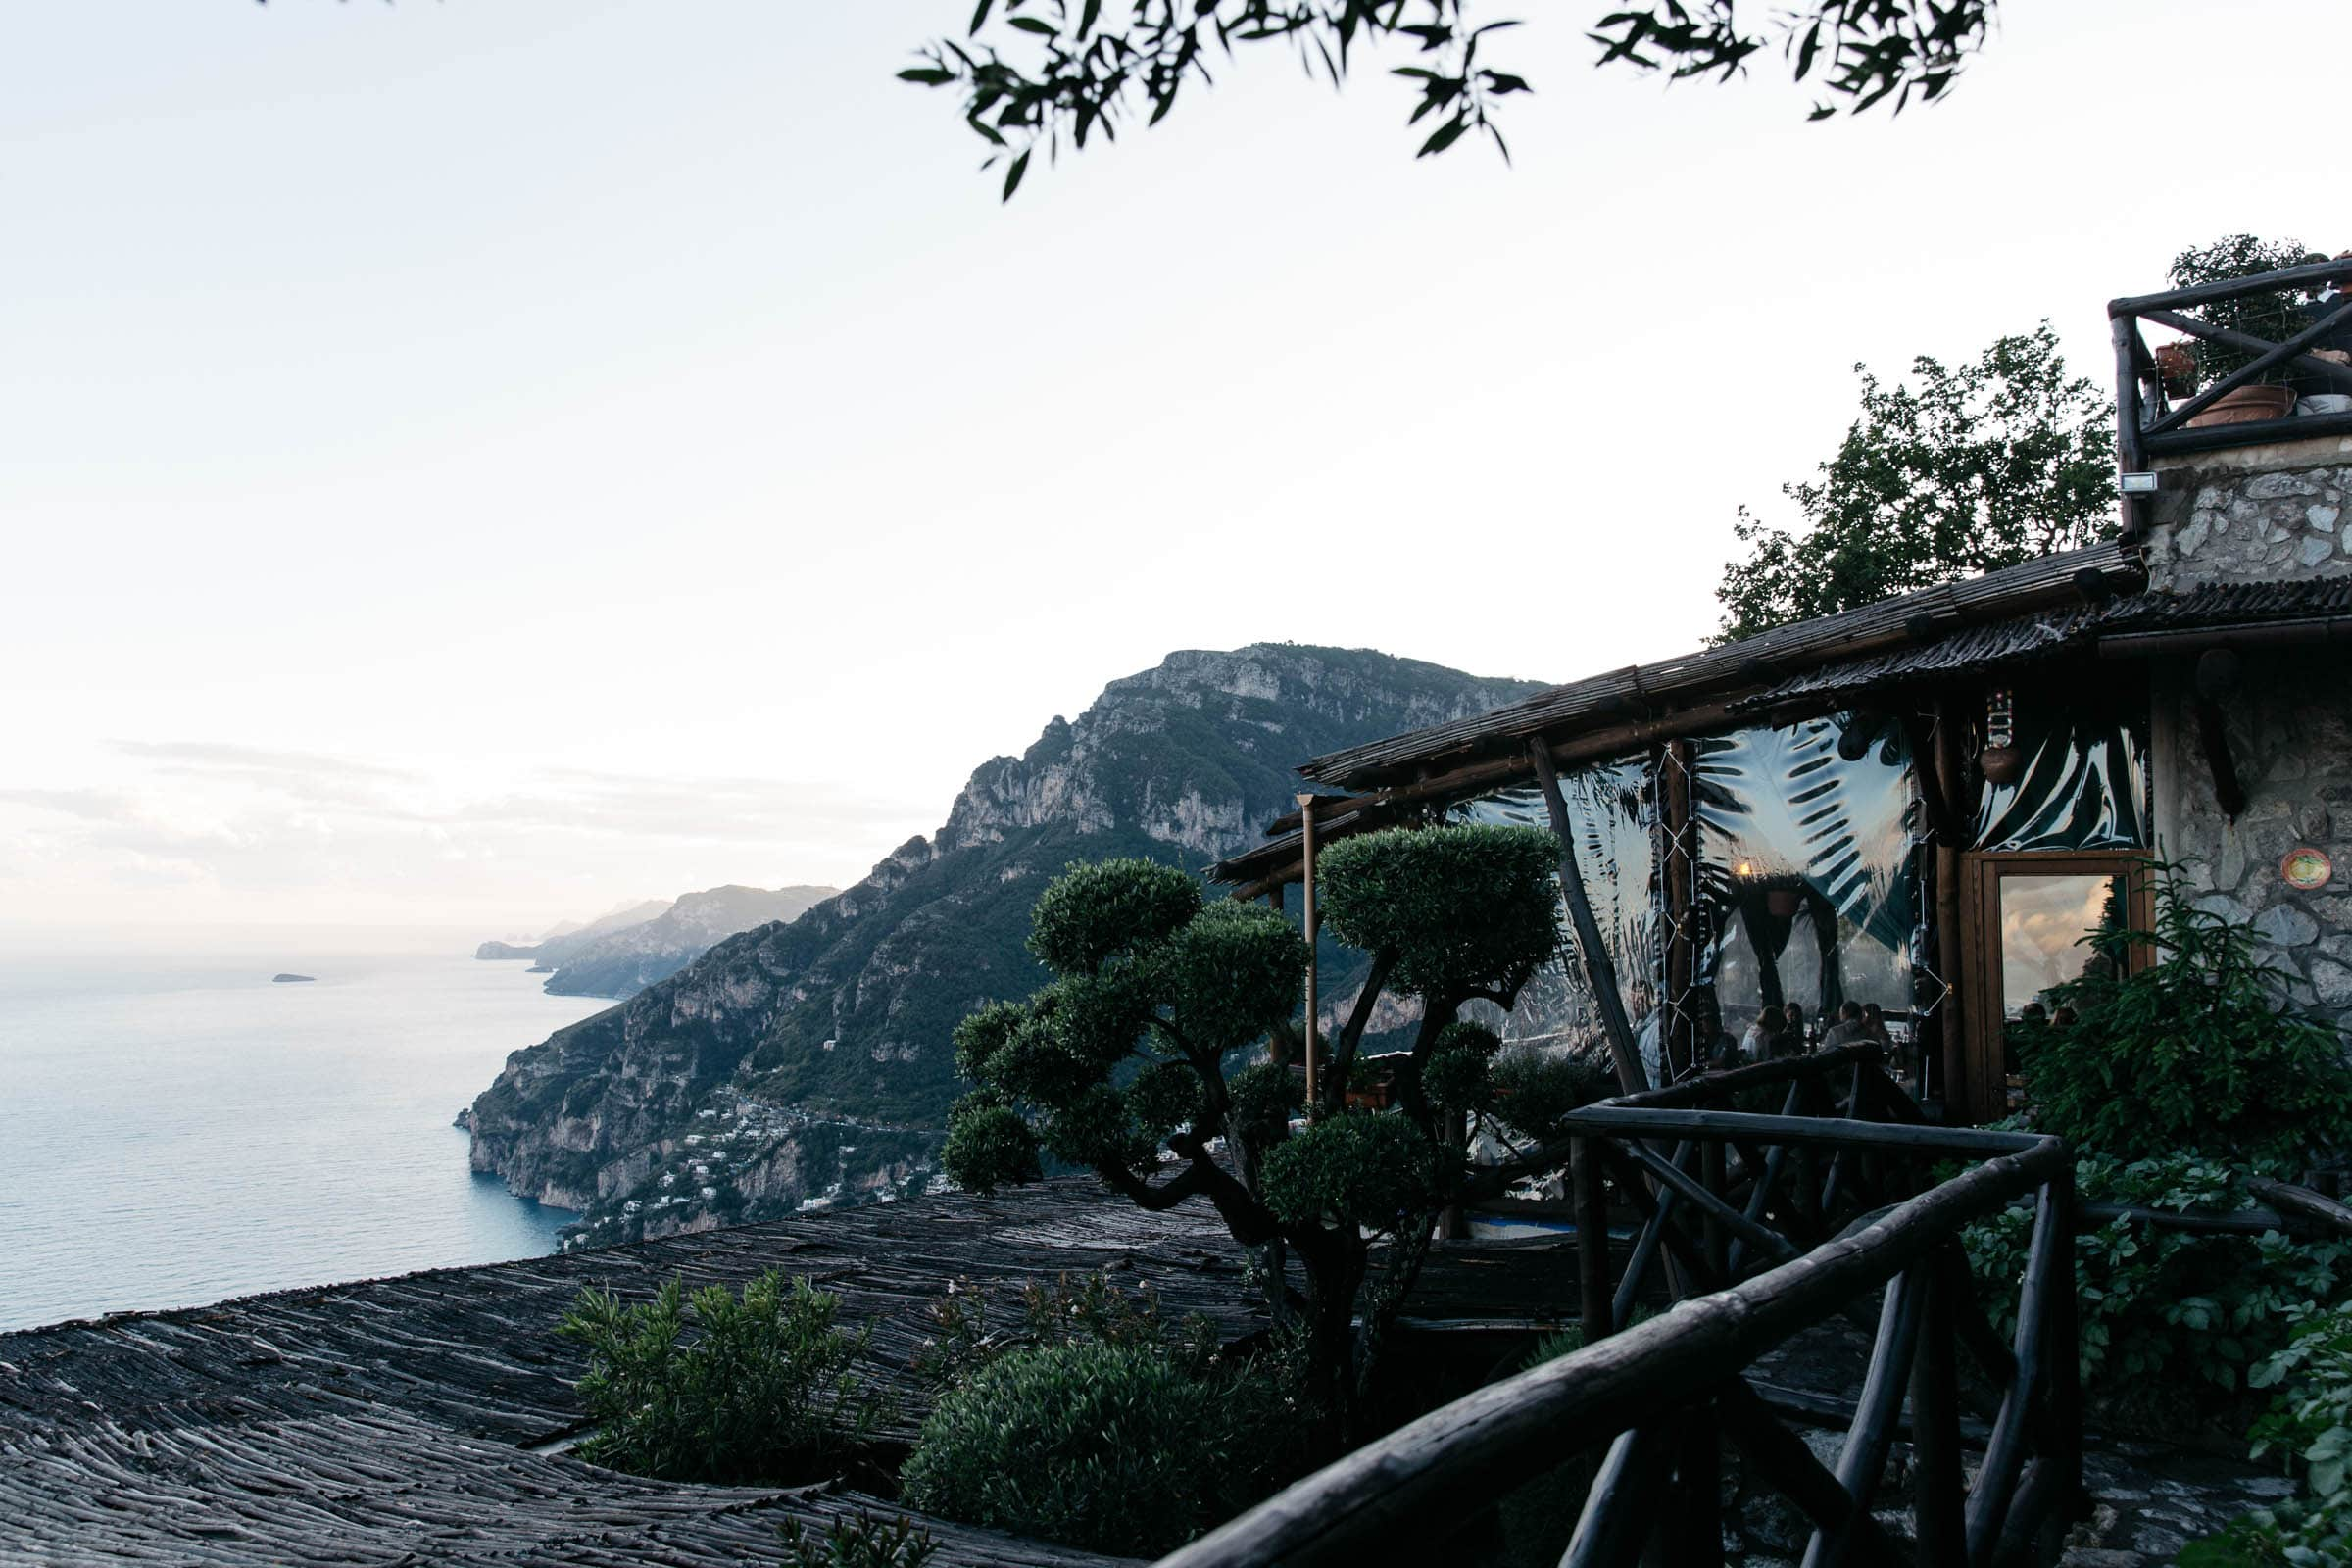 Where to watch the sunset Positano